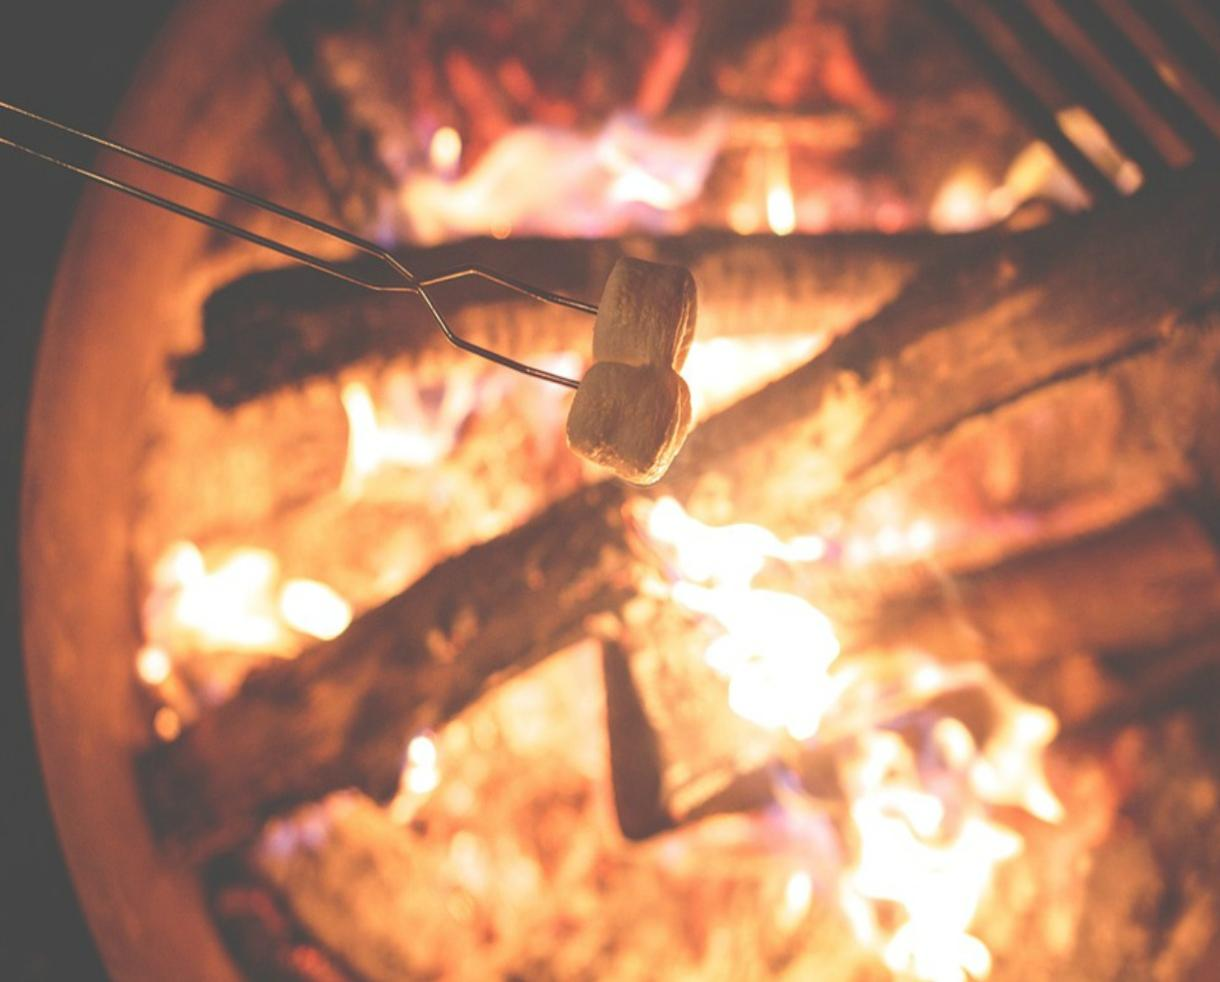 $150 for 3-Hour Private Campfire + Admission for Up to 10 People to Montpelier Farms ($295 Value - 50% Off)